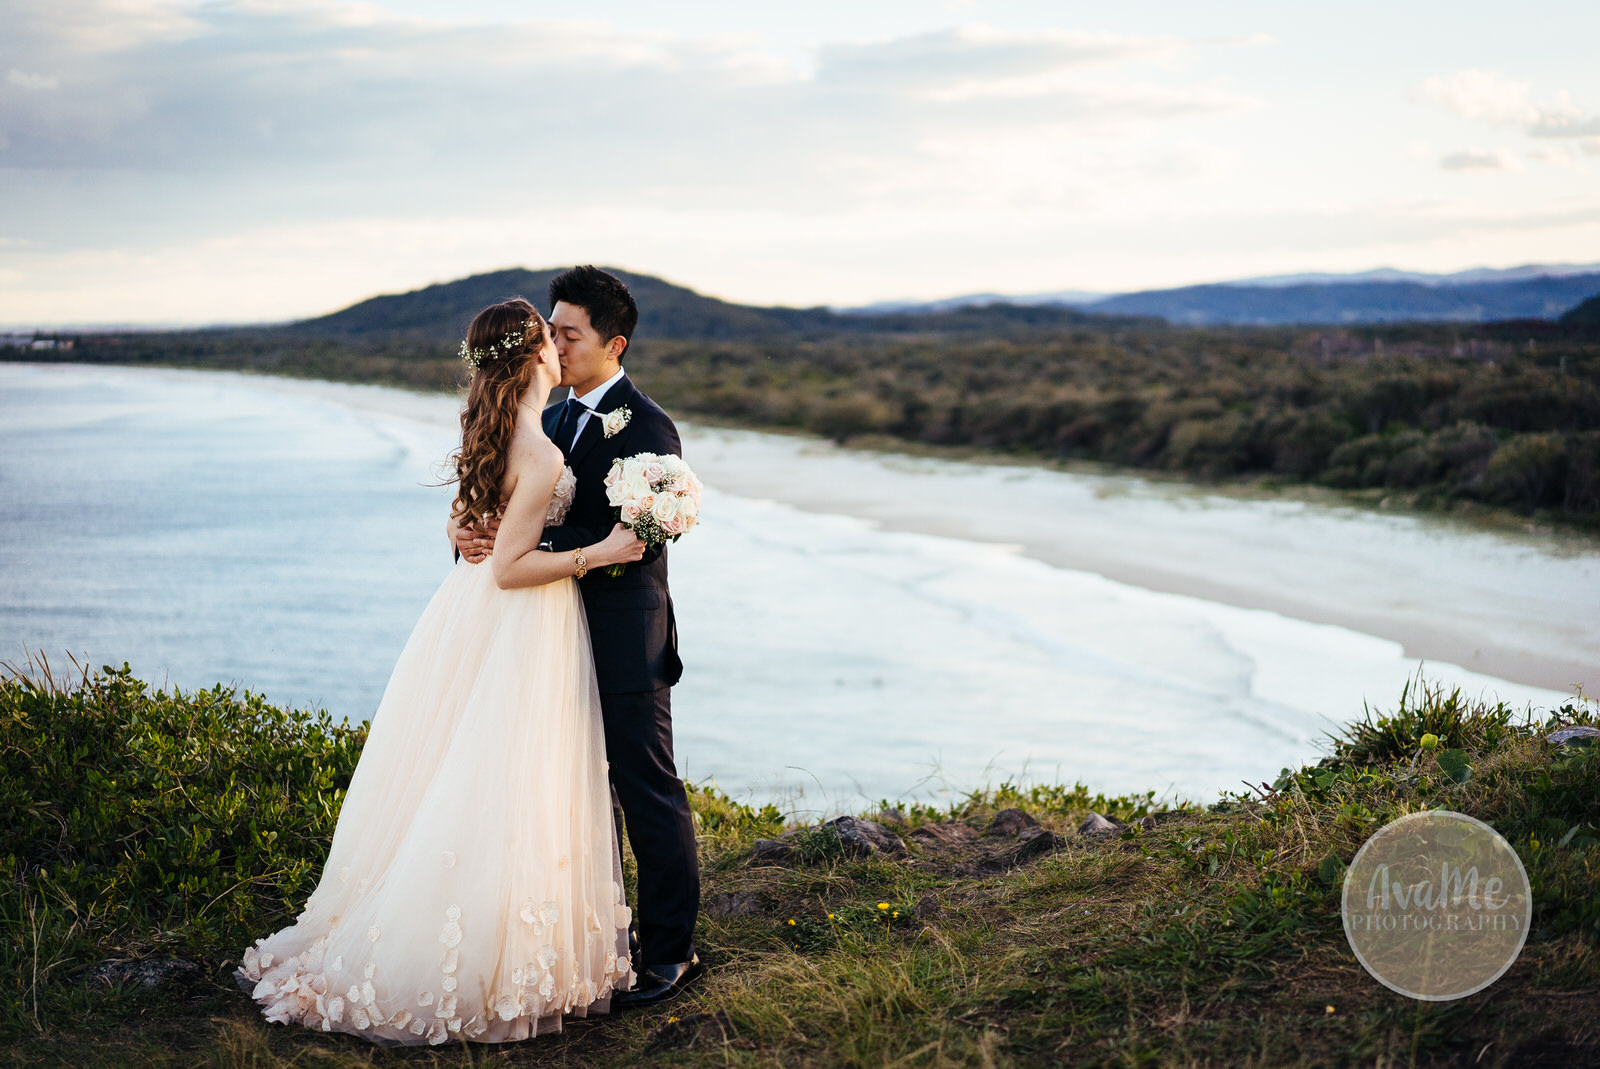 hannah-seungwoo-kingscliff-wedding-224